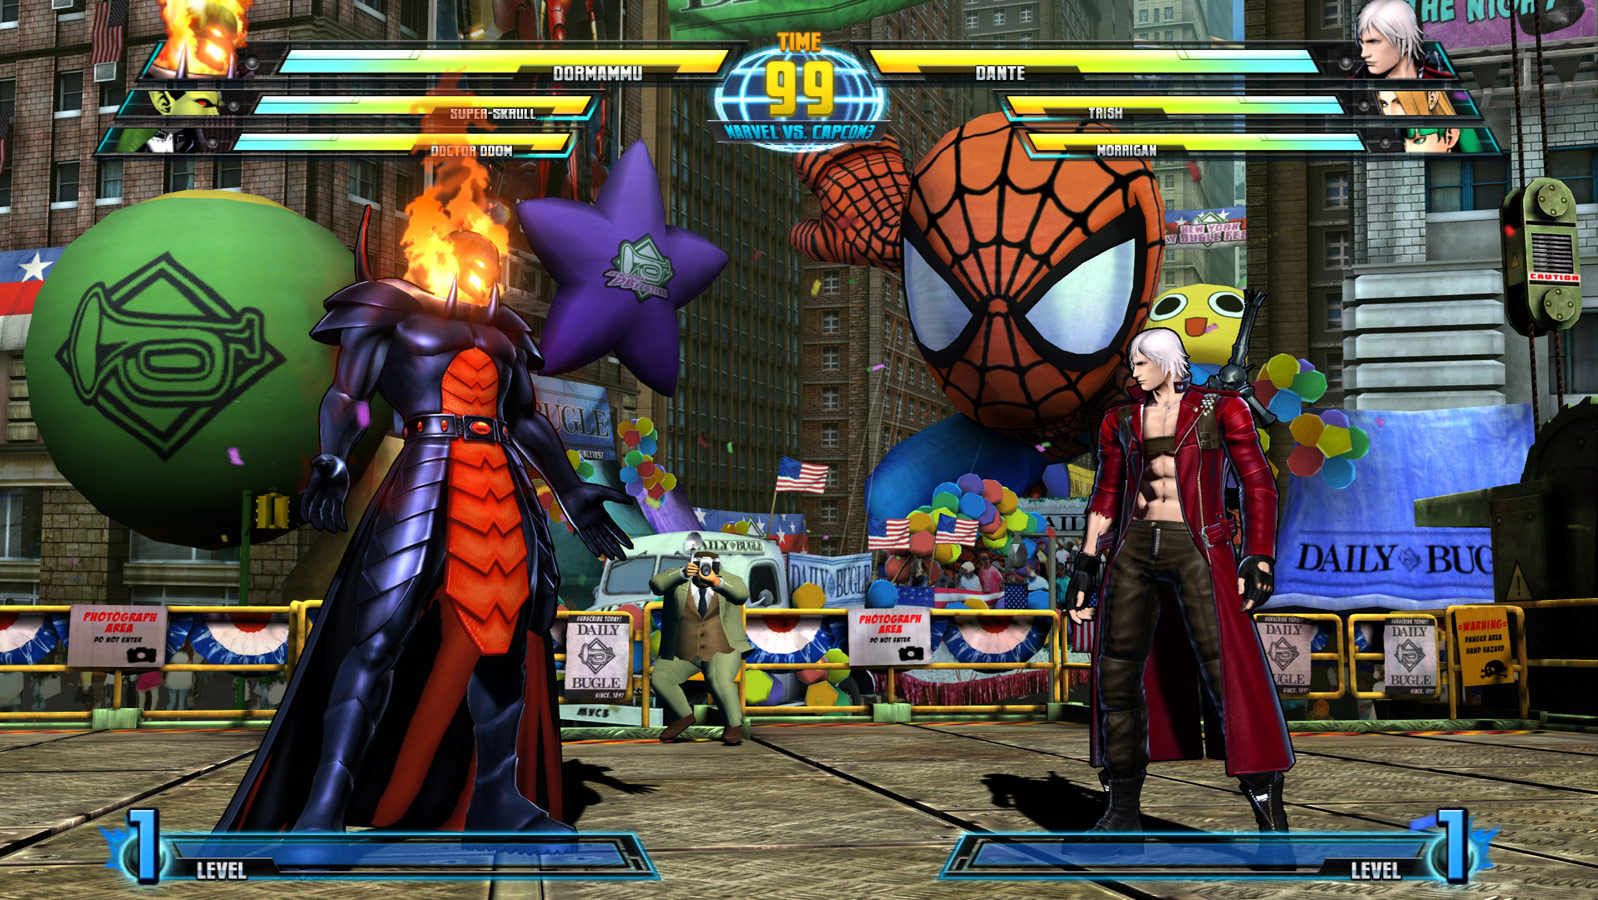 Marvel vs. Capcom 3 screen shot Aug. 18 image #4